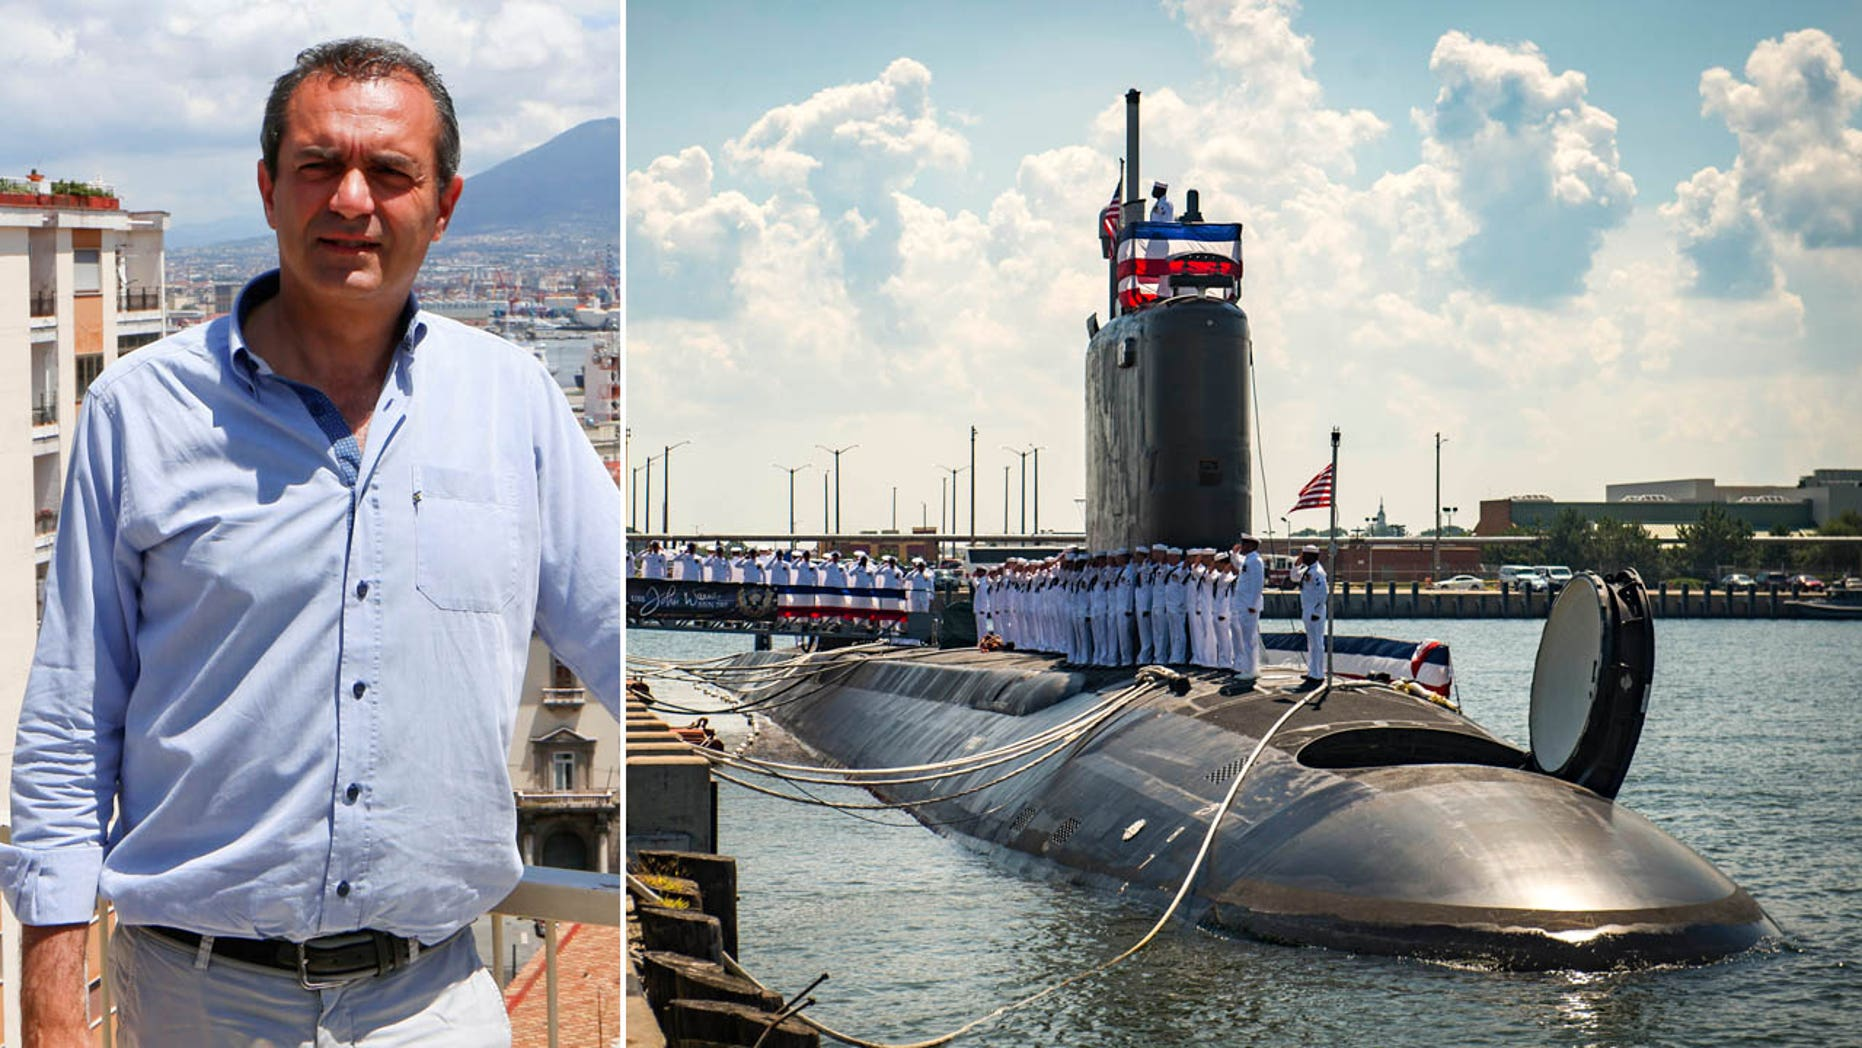 Naples' mayor Luigi de Magistris said the U.S.S. John Warner, a nuclear submarine, is not welcome in the city.